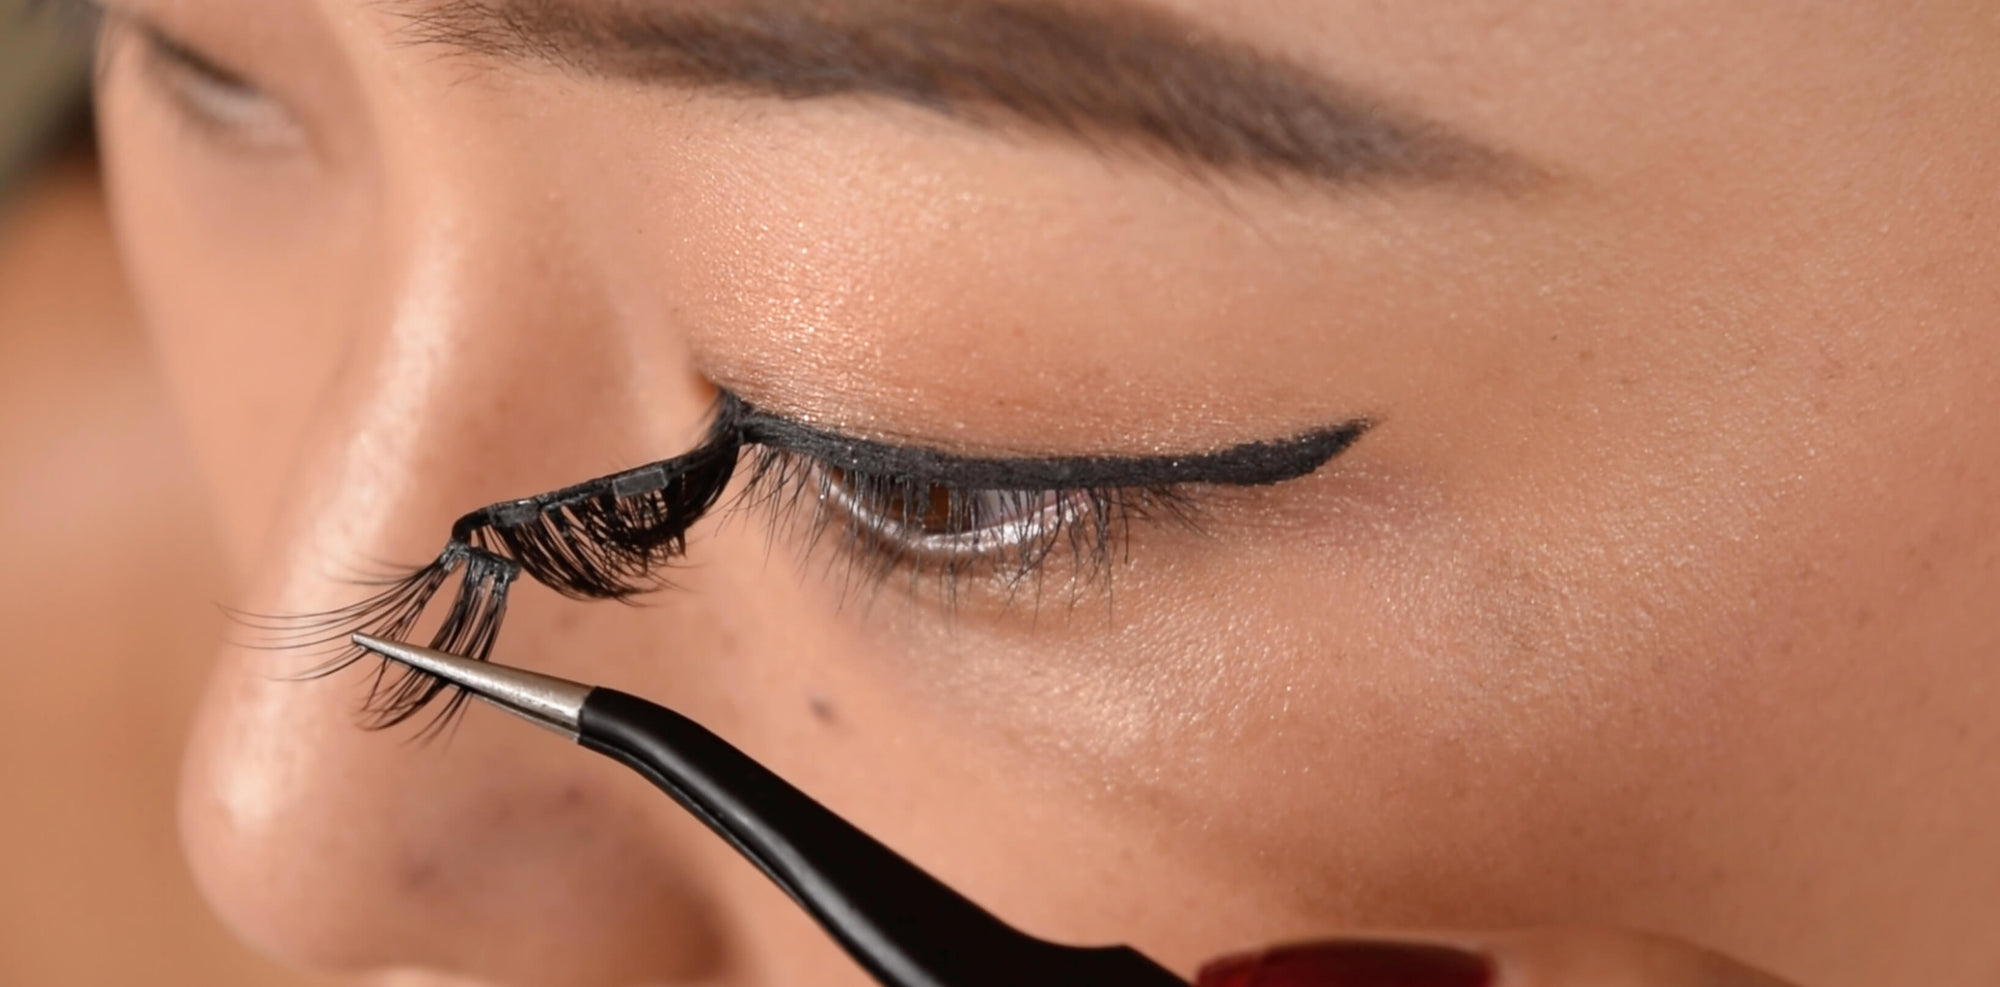 Magnetic eyelashes vs glue; 5 reasons why you should start using magnetic eyelashes